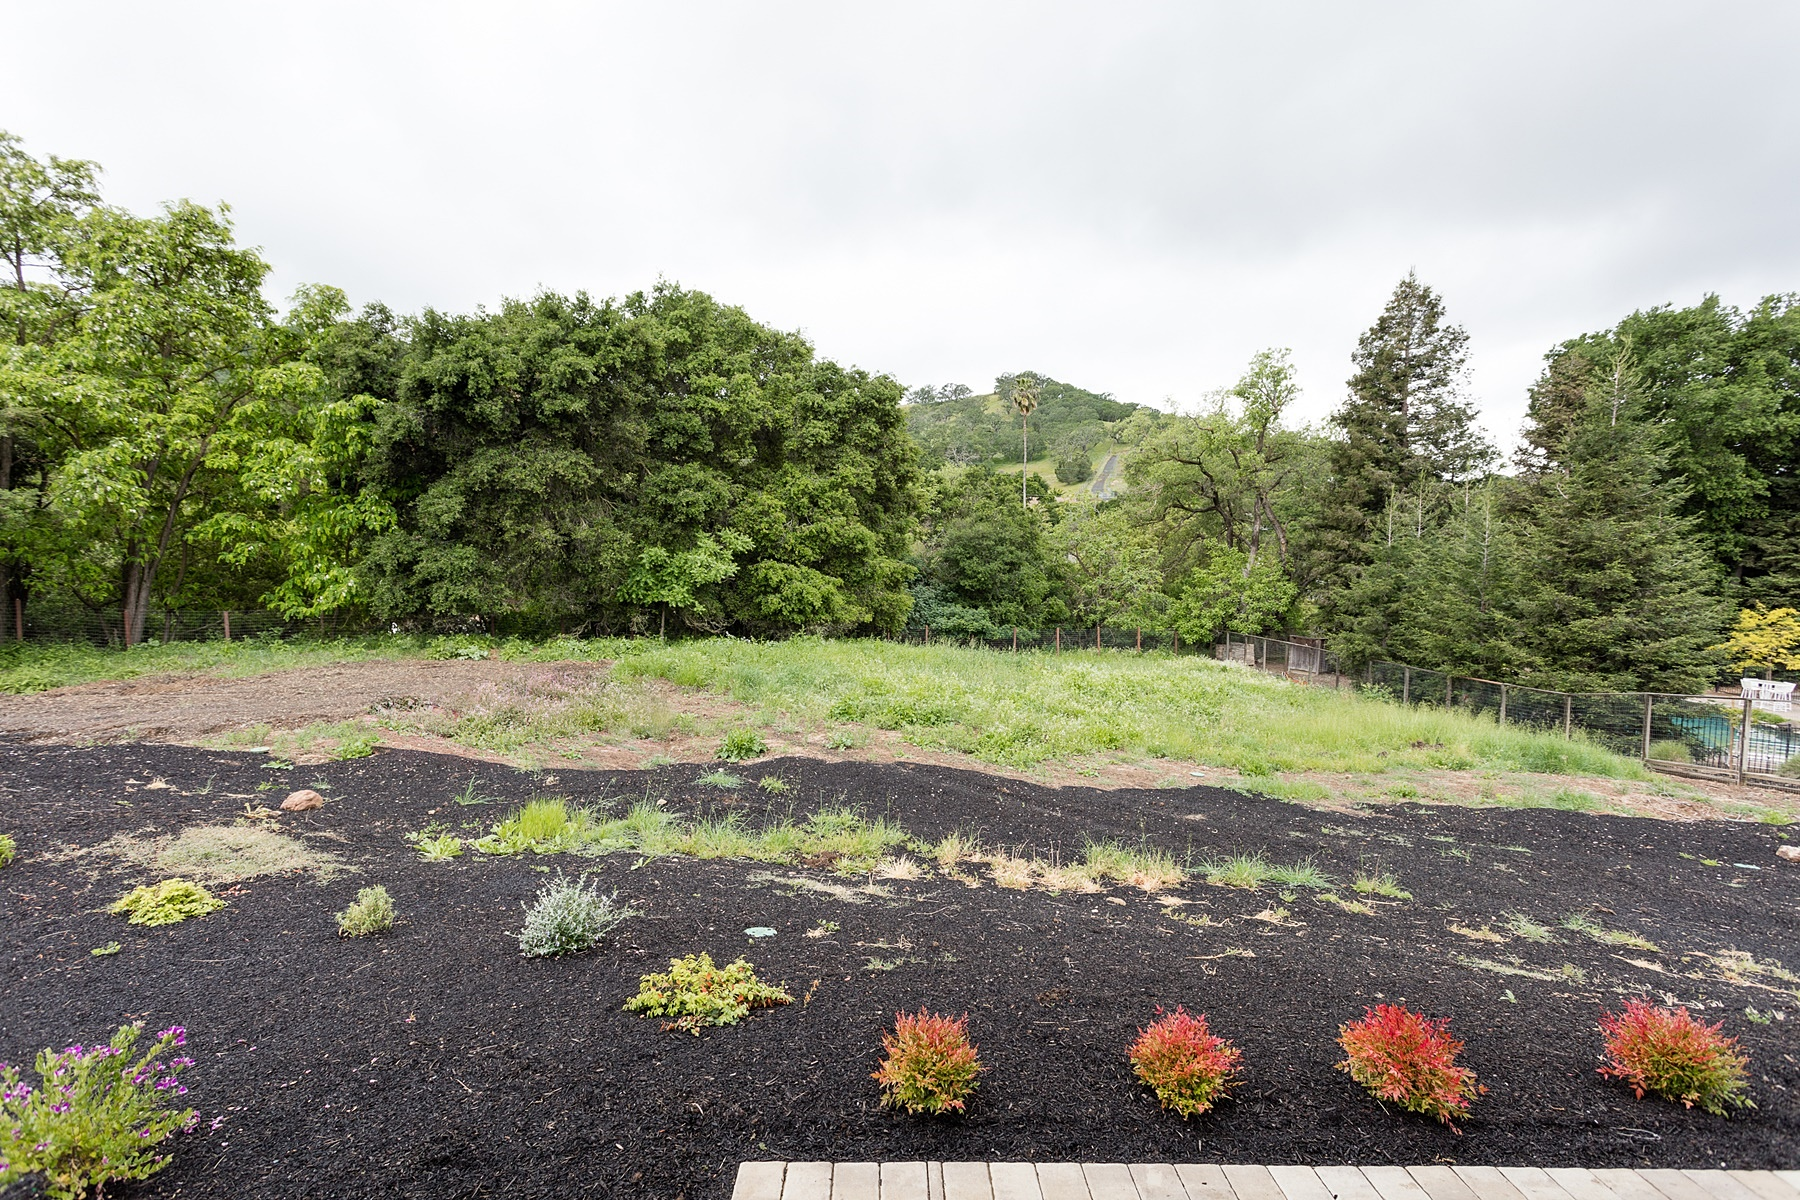 Additional photo for property listing at Country Quiet, Yet City Close 550 Pine Creek Road Walnut Creek, California 94598 Estados Unidos